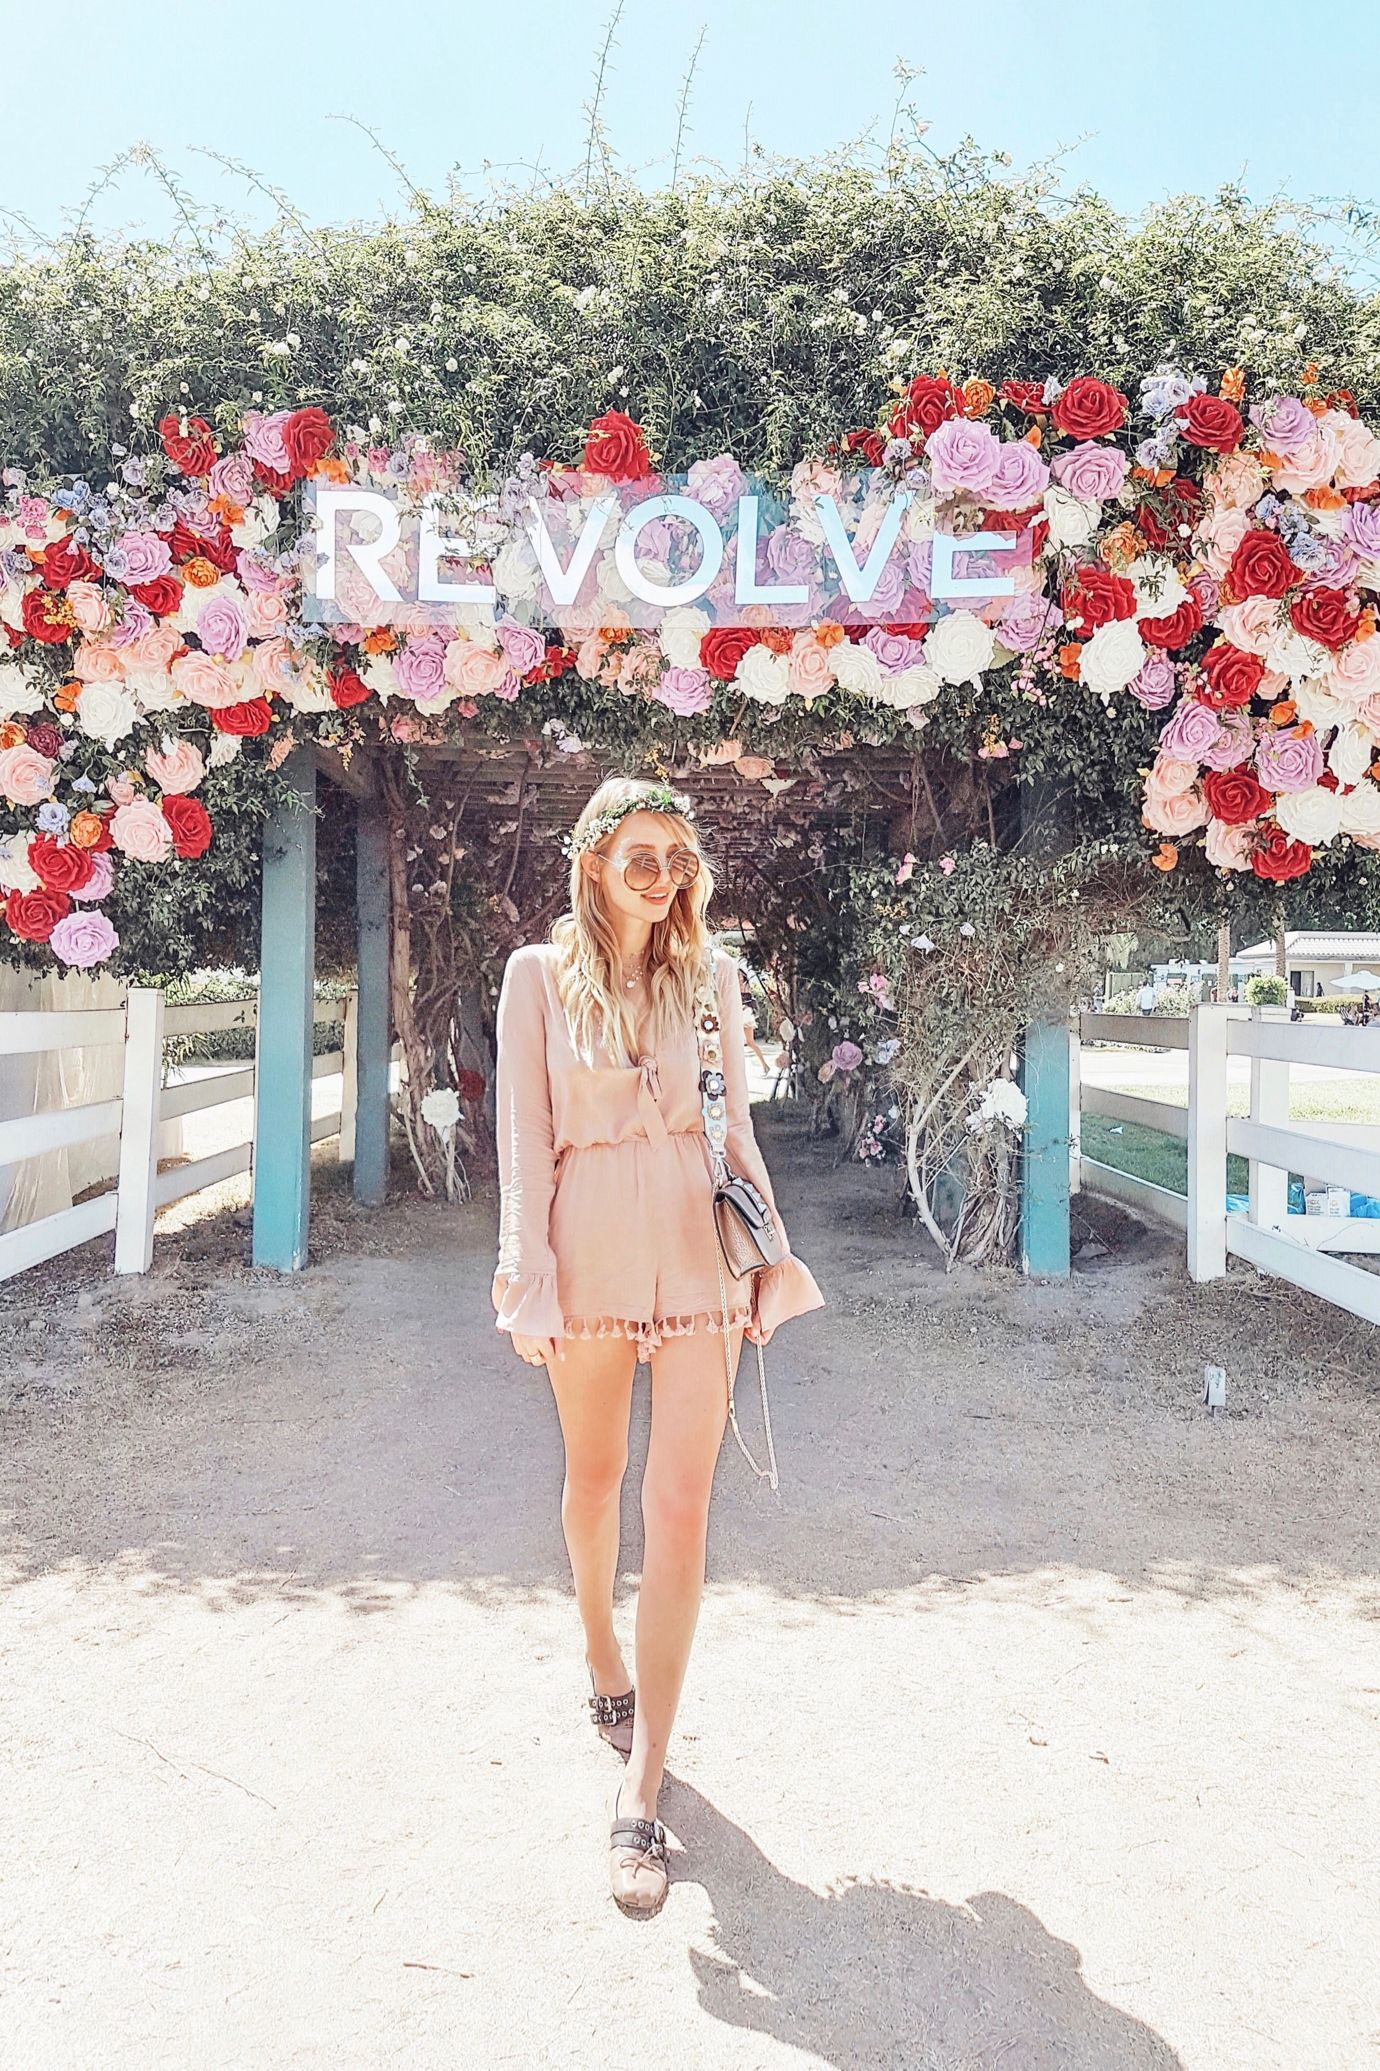 Flower Power at Coachella #RevolveFestival | Palm Springs http://www.ohhcouture.com/2017/04/revolvefestival-coachella-palm-springs/ #leoniehanne #ohhcouture